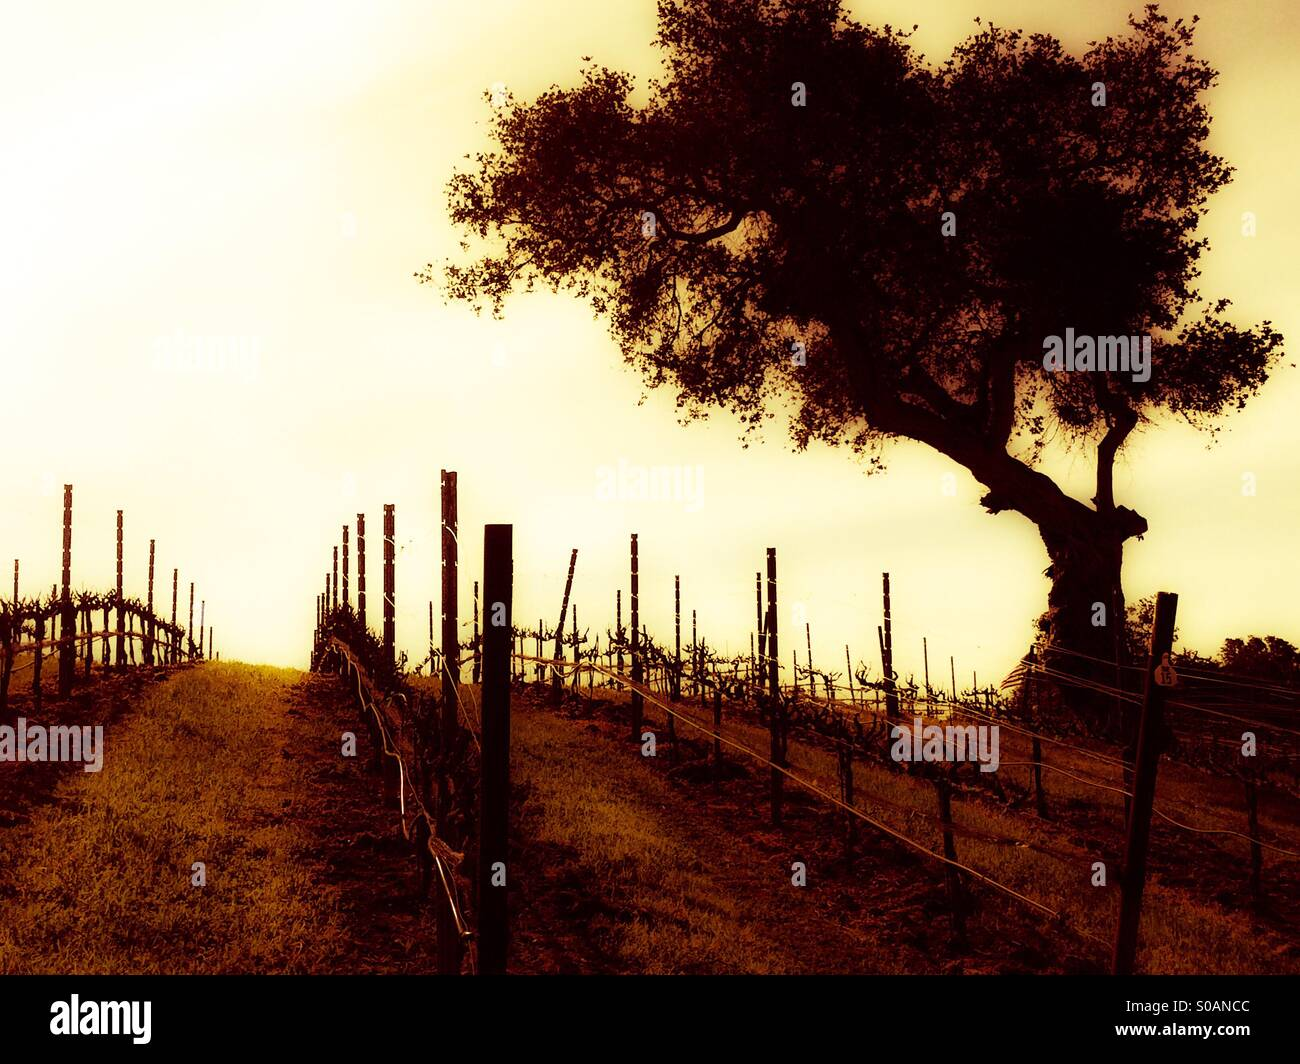 laetitia-vineyard-and-winery-in-arroyo-g